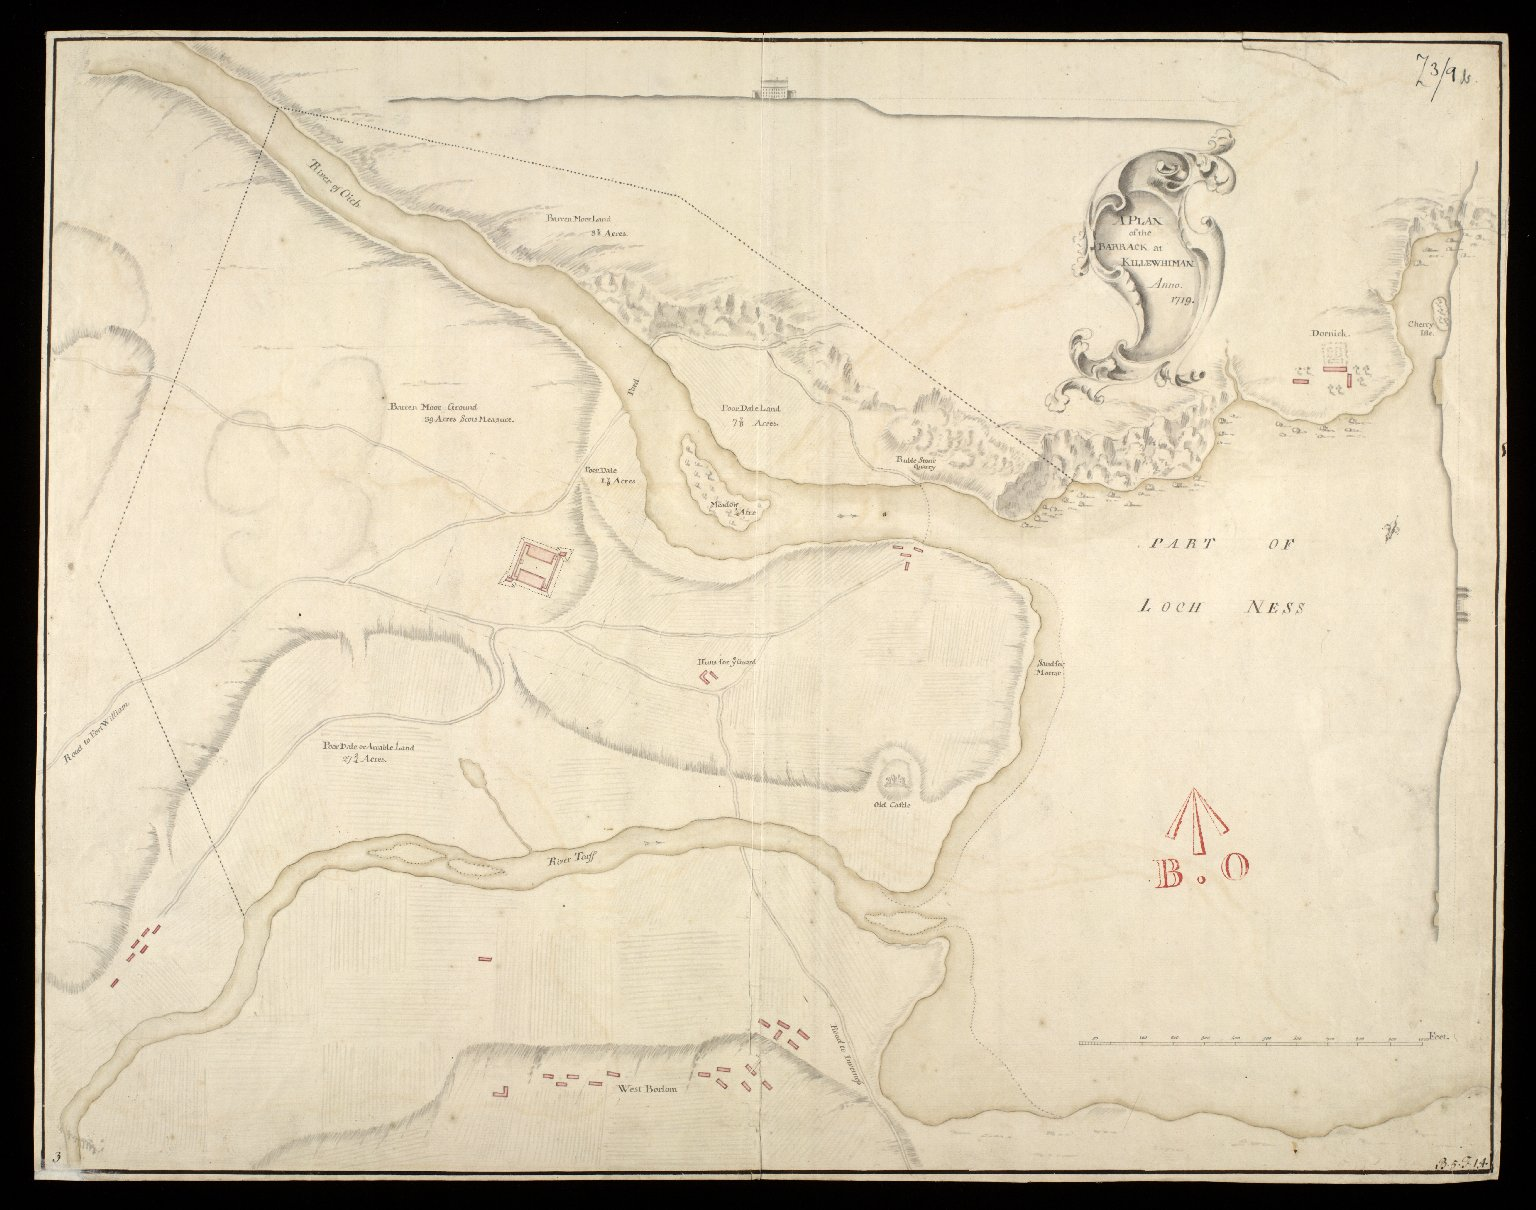 A Plan of the barrack at Killewhiman [i.e. Kiliwhimen] anno 1719 [copy] [1 of 1]